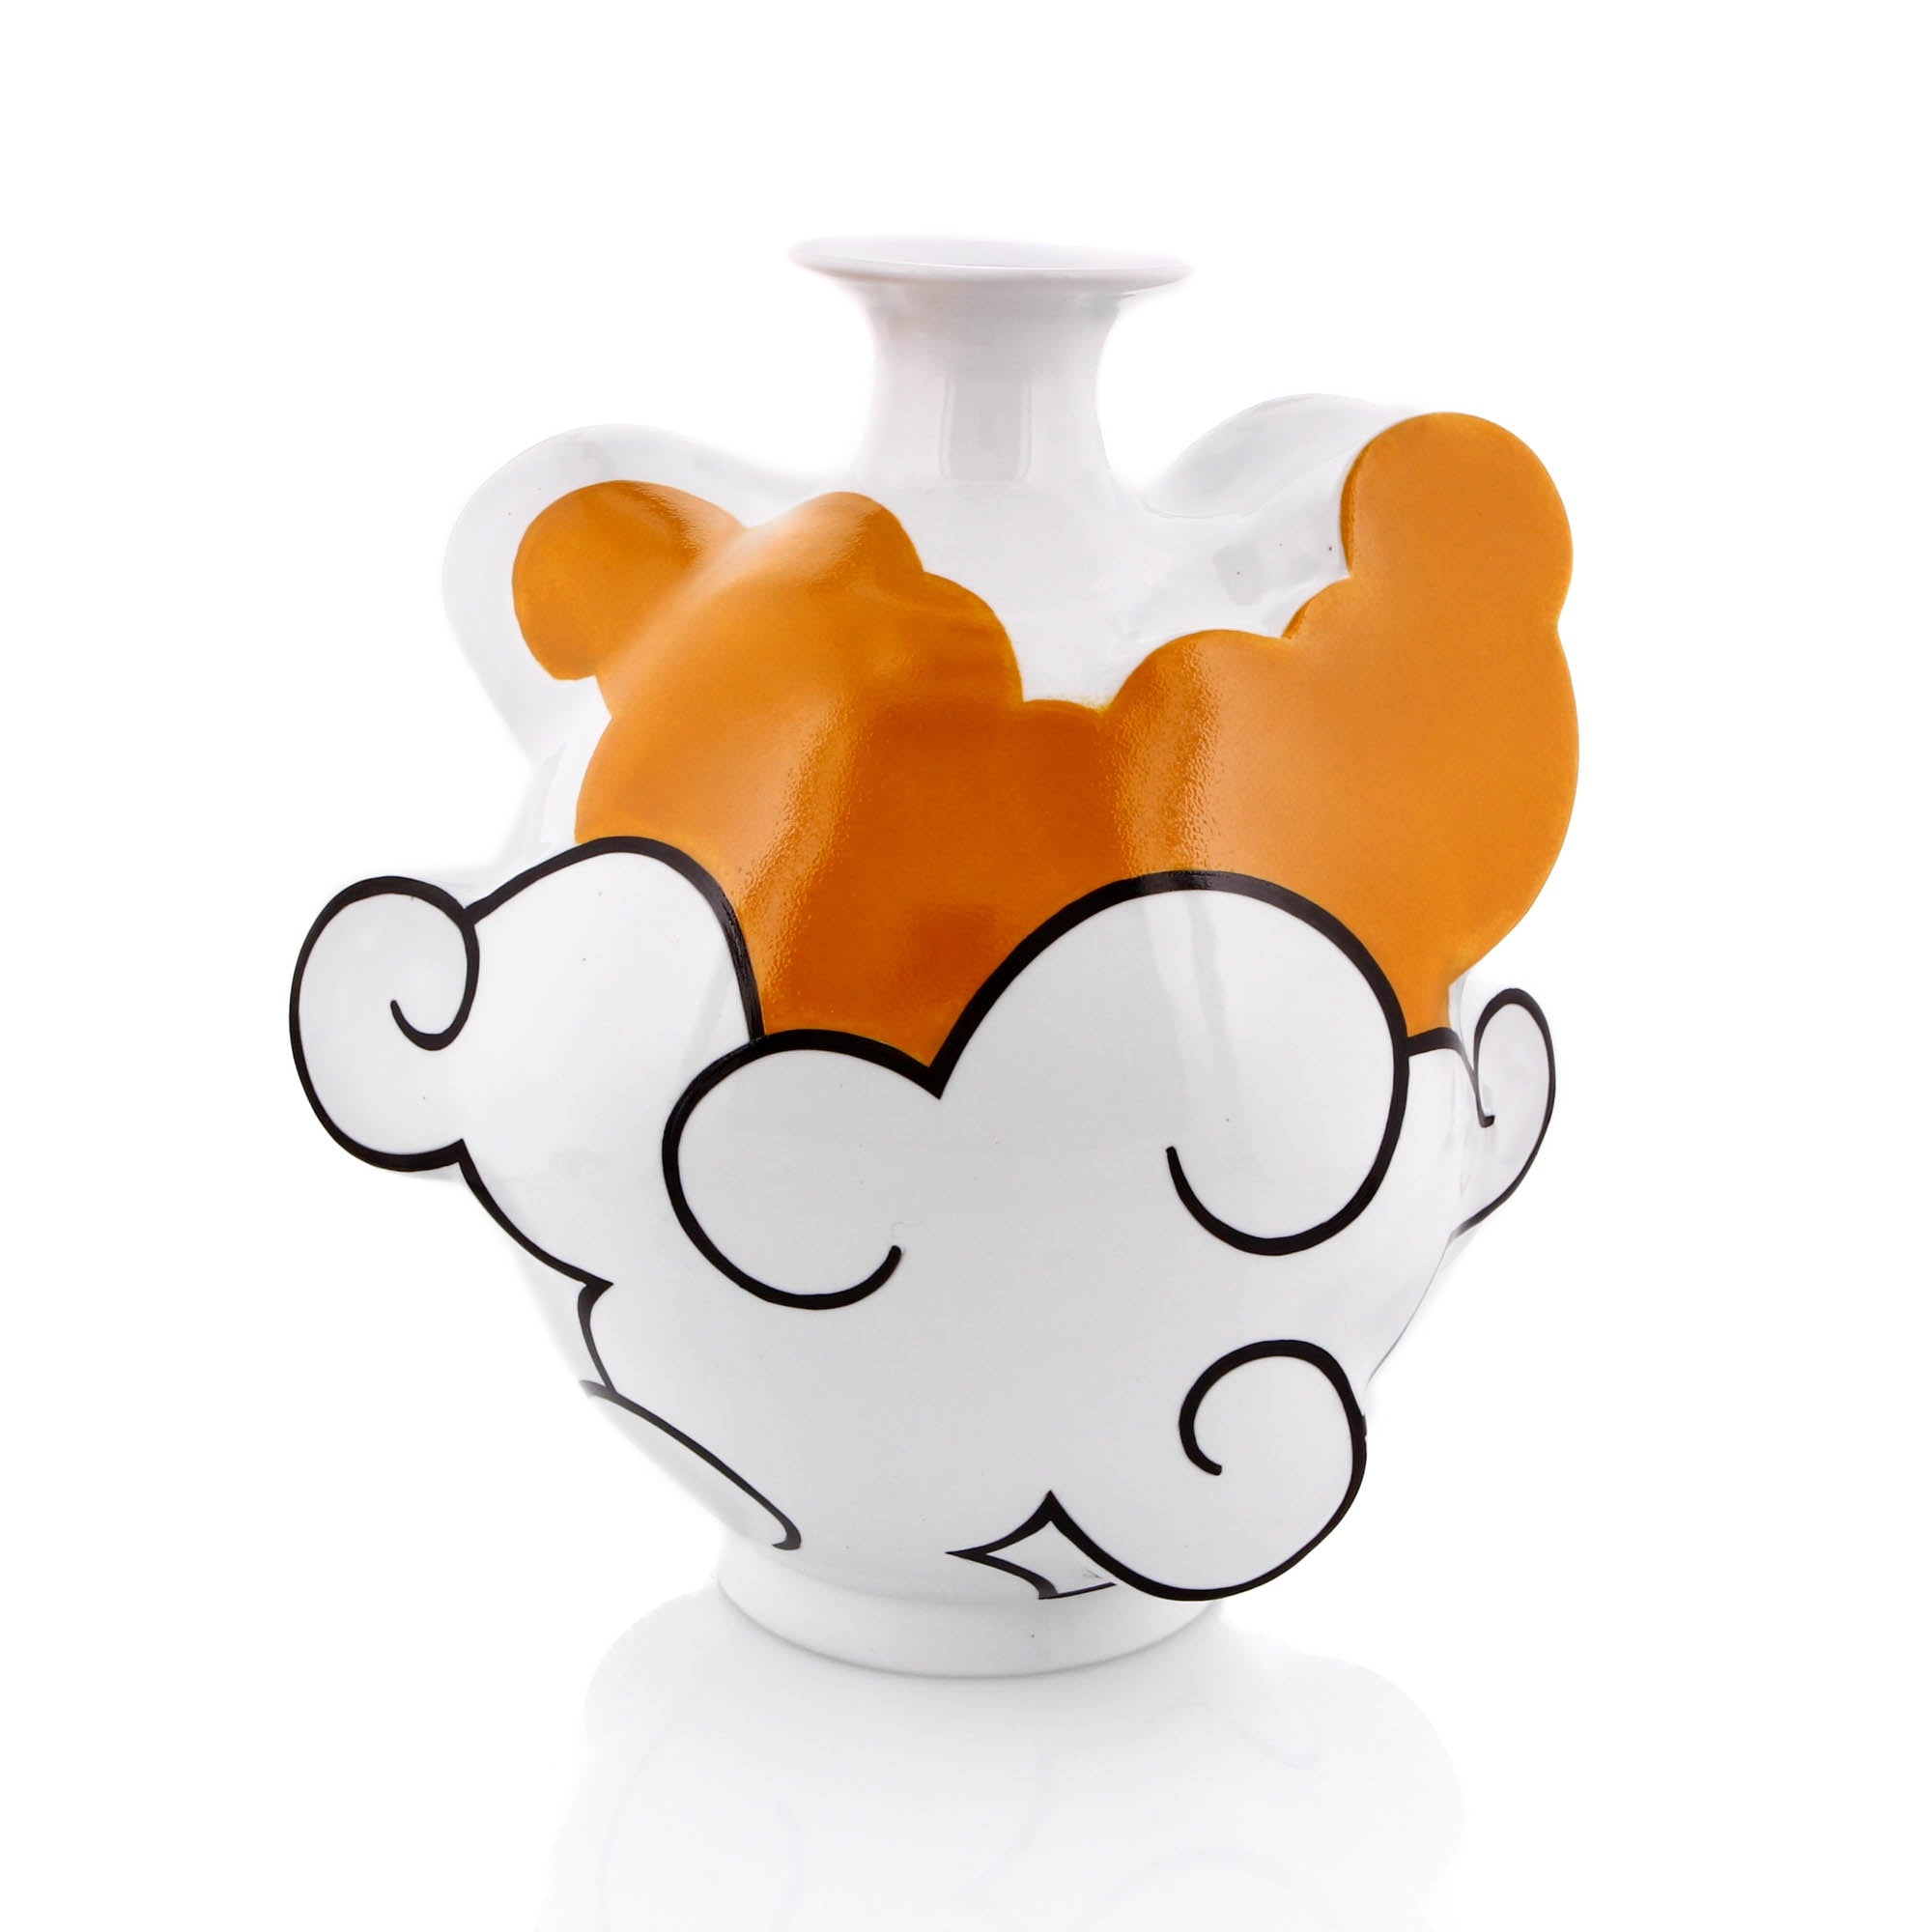 Sam Chung, Cloud Vase, Porcelain with Orange and Black